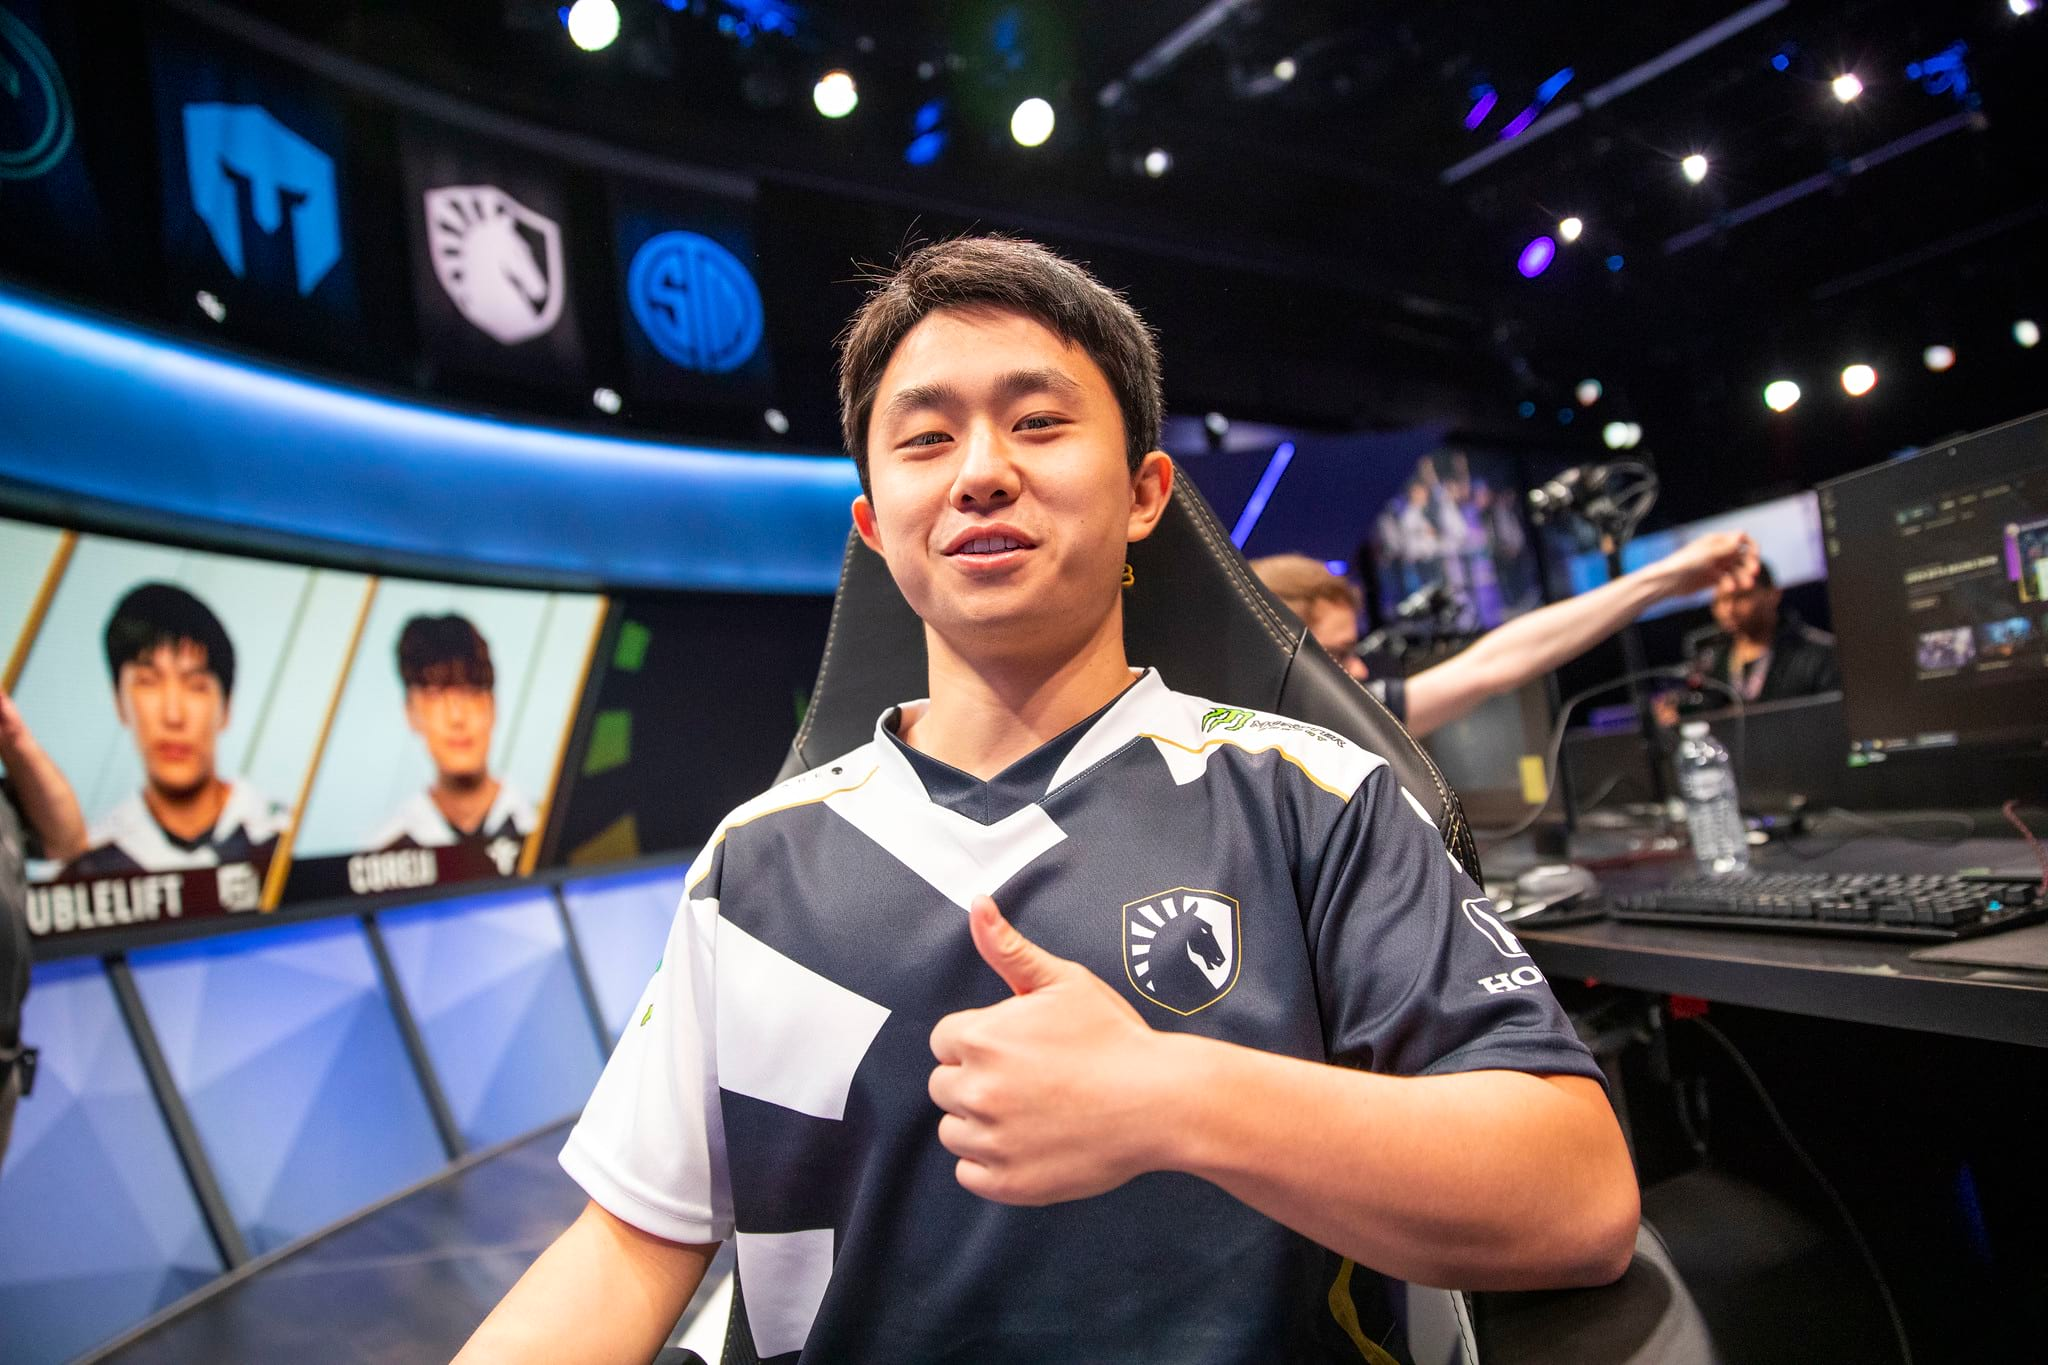 Shernfire in Team Liquid jersey at the LCS in Spring 2020.